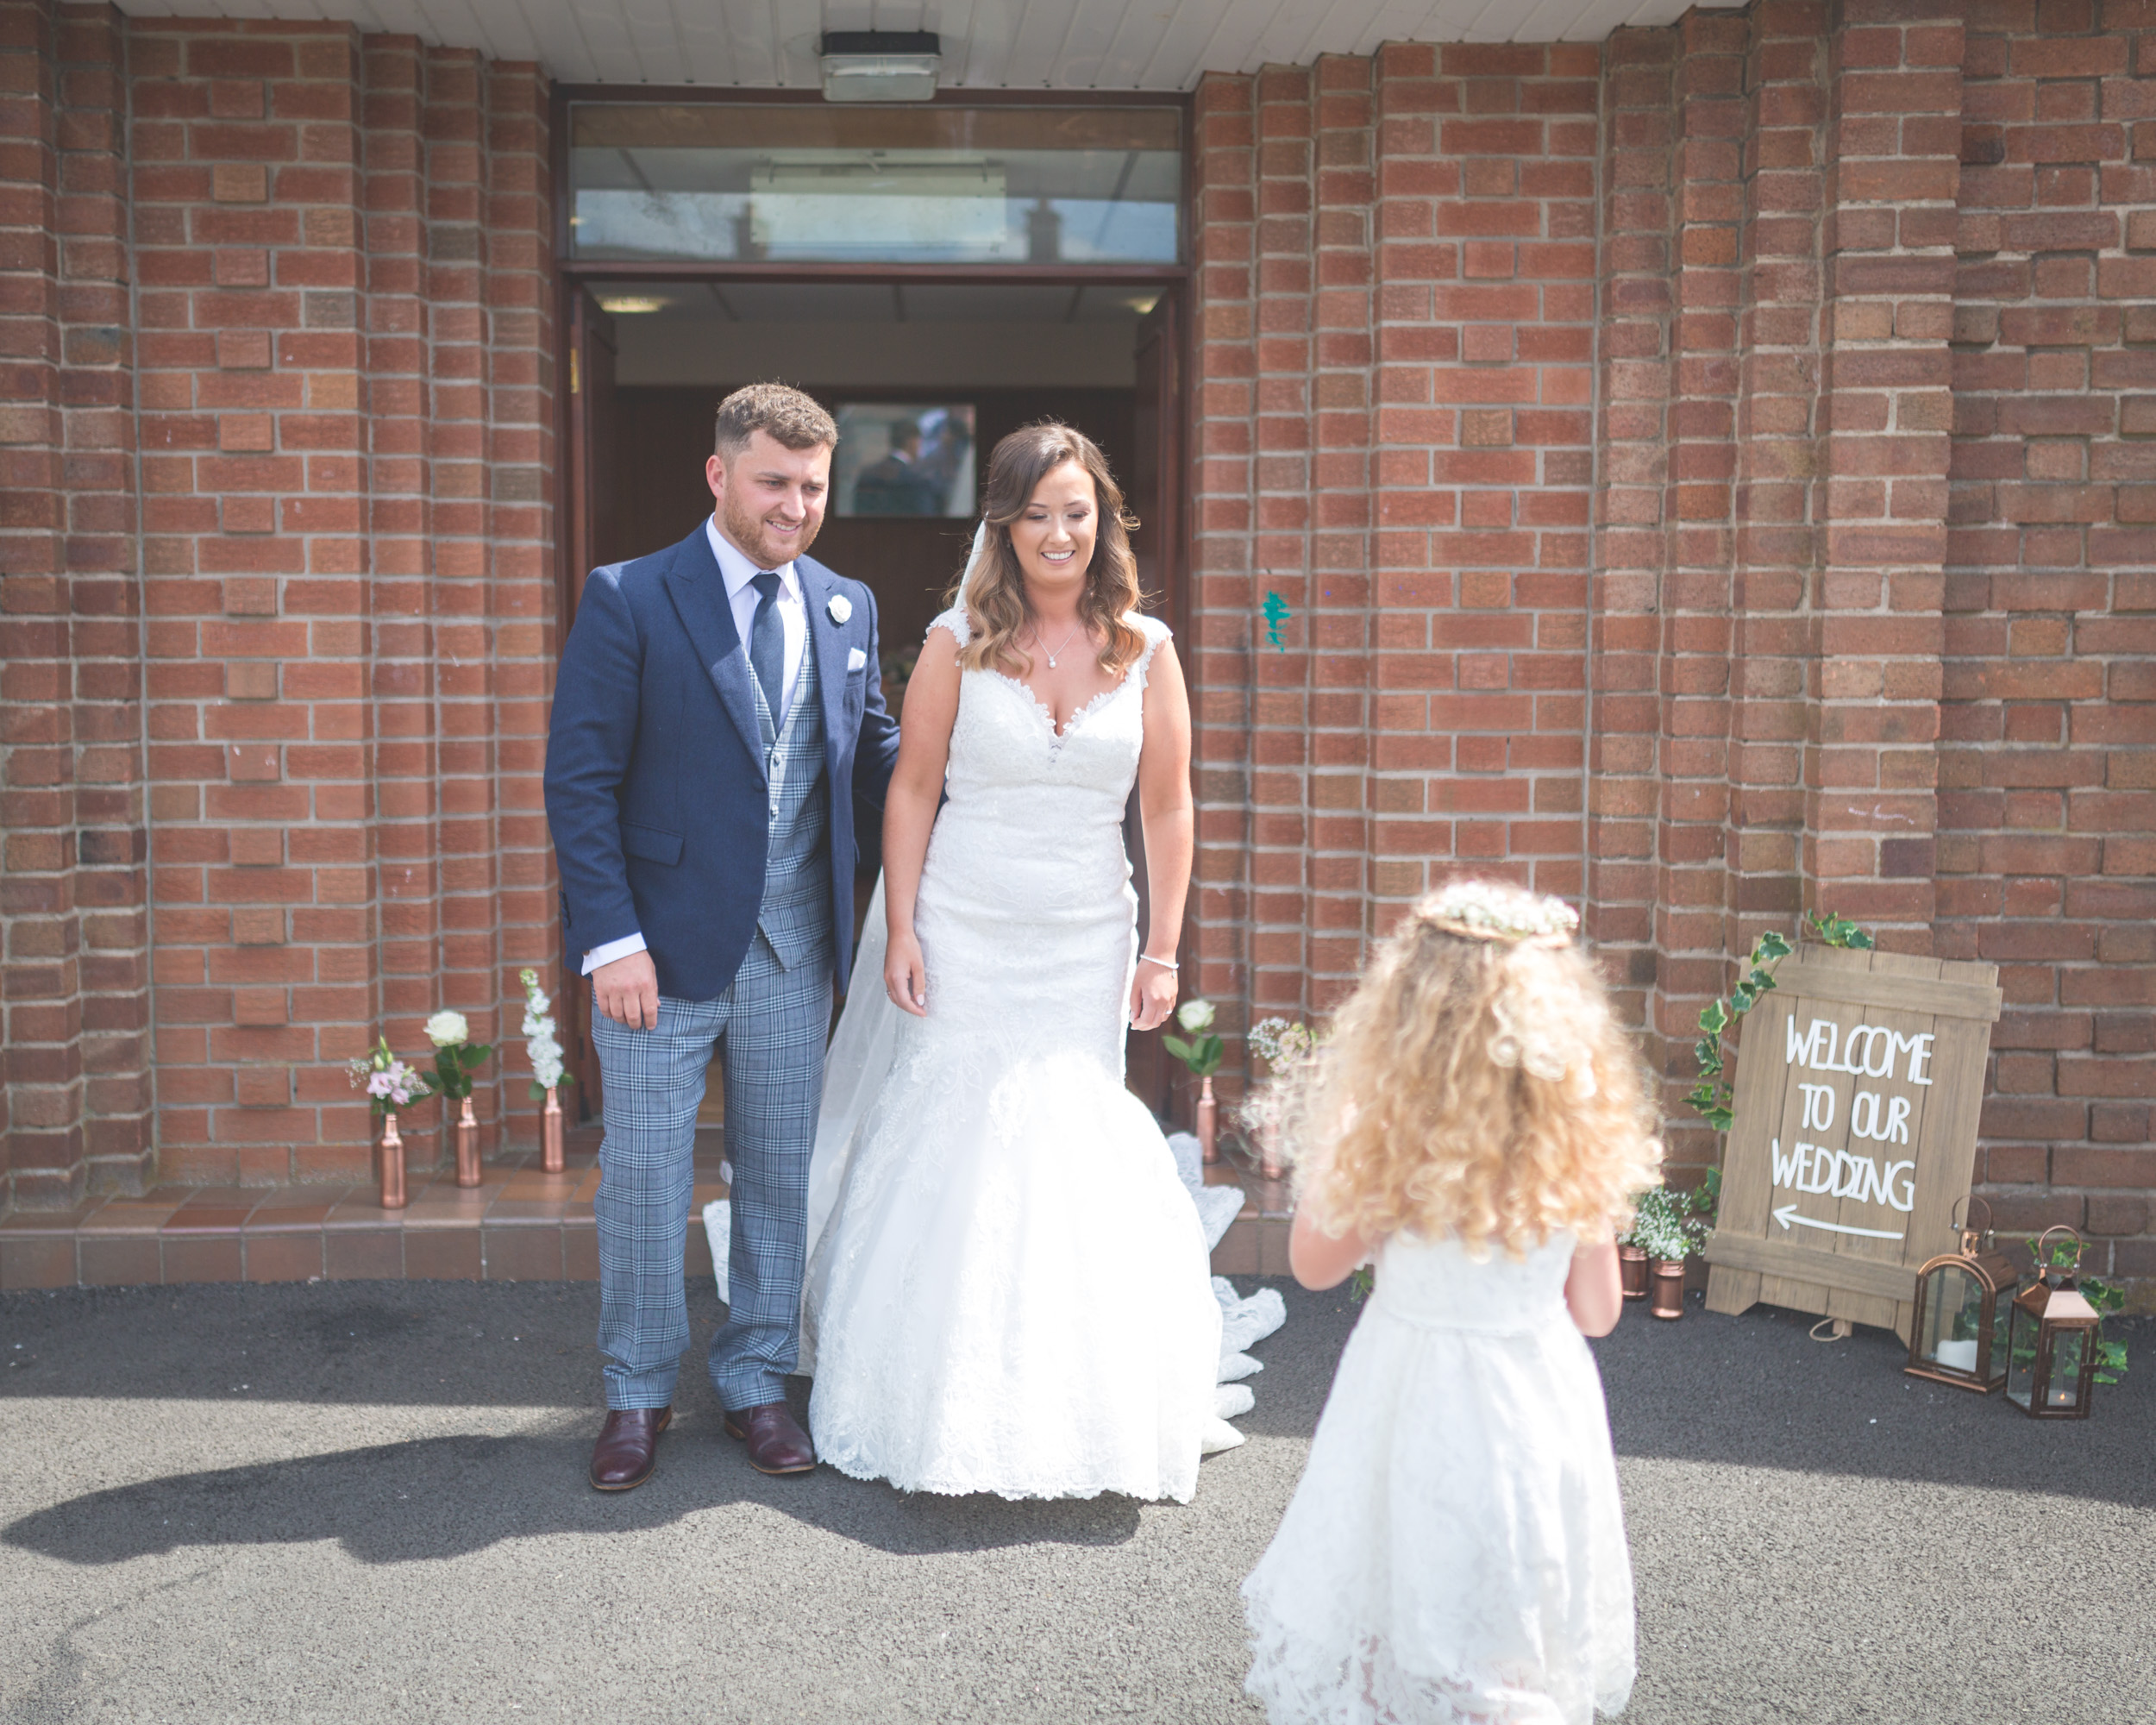 Brian McEwan | Northern Ireland Wedding Photographer | Rebecca & Michael | Ceremony-115.jpg